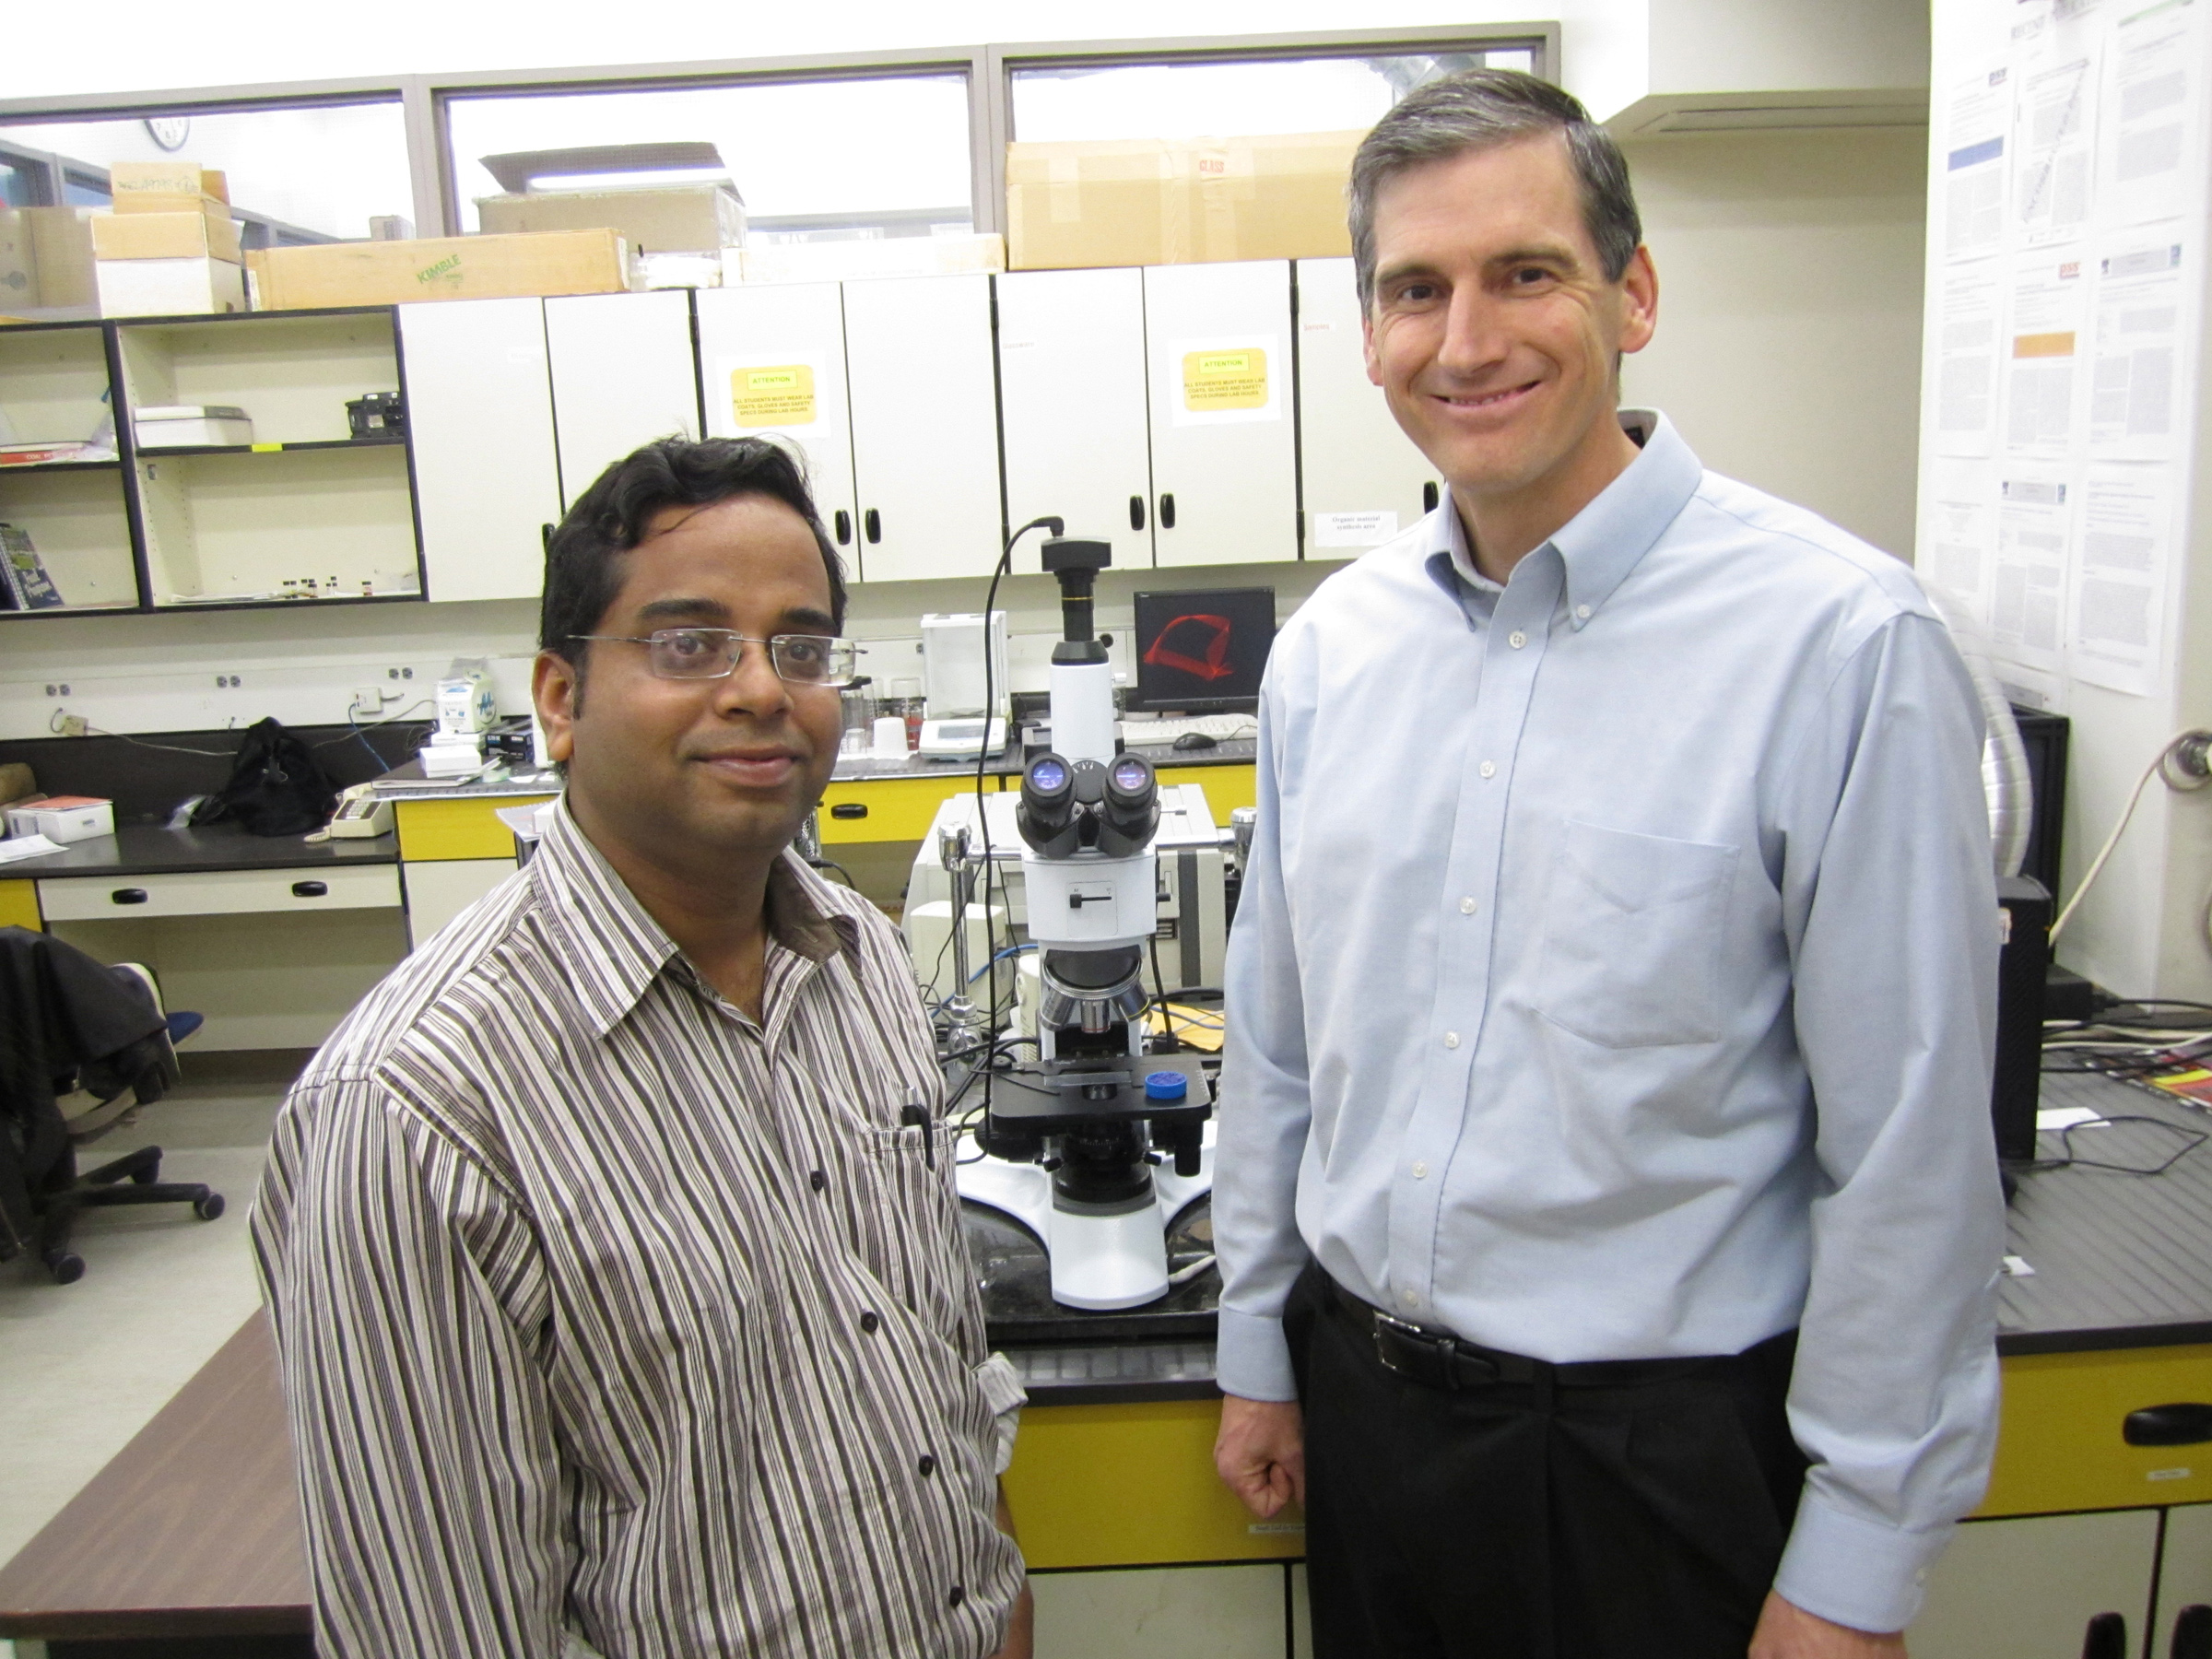 University of Utah metallurgical engineers Prashant Sarswat and Michael Free used an old office microwave oven to produce a nanocrystal semiconductor named CZTS that is made from cheaper, less toxic materials than other semiconductors and holds promise for more efficient solar power cells and lighting by LEDs, or light-emitting diodes, as well as sensors for medical tests and systems to convert waste heat to electricity.